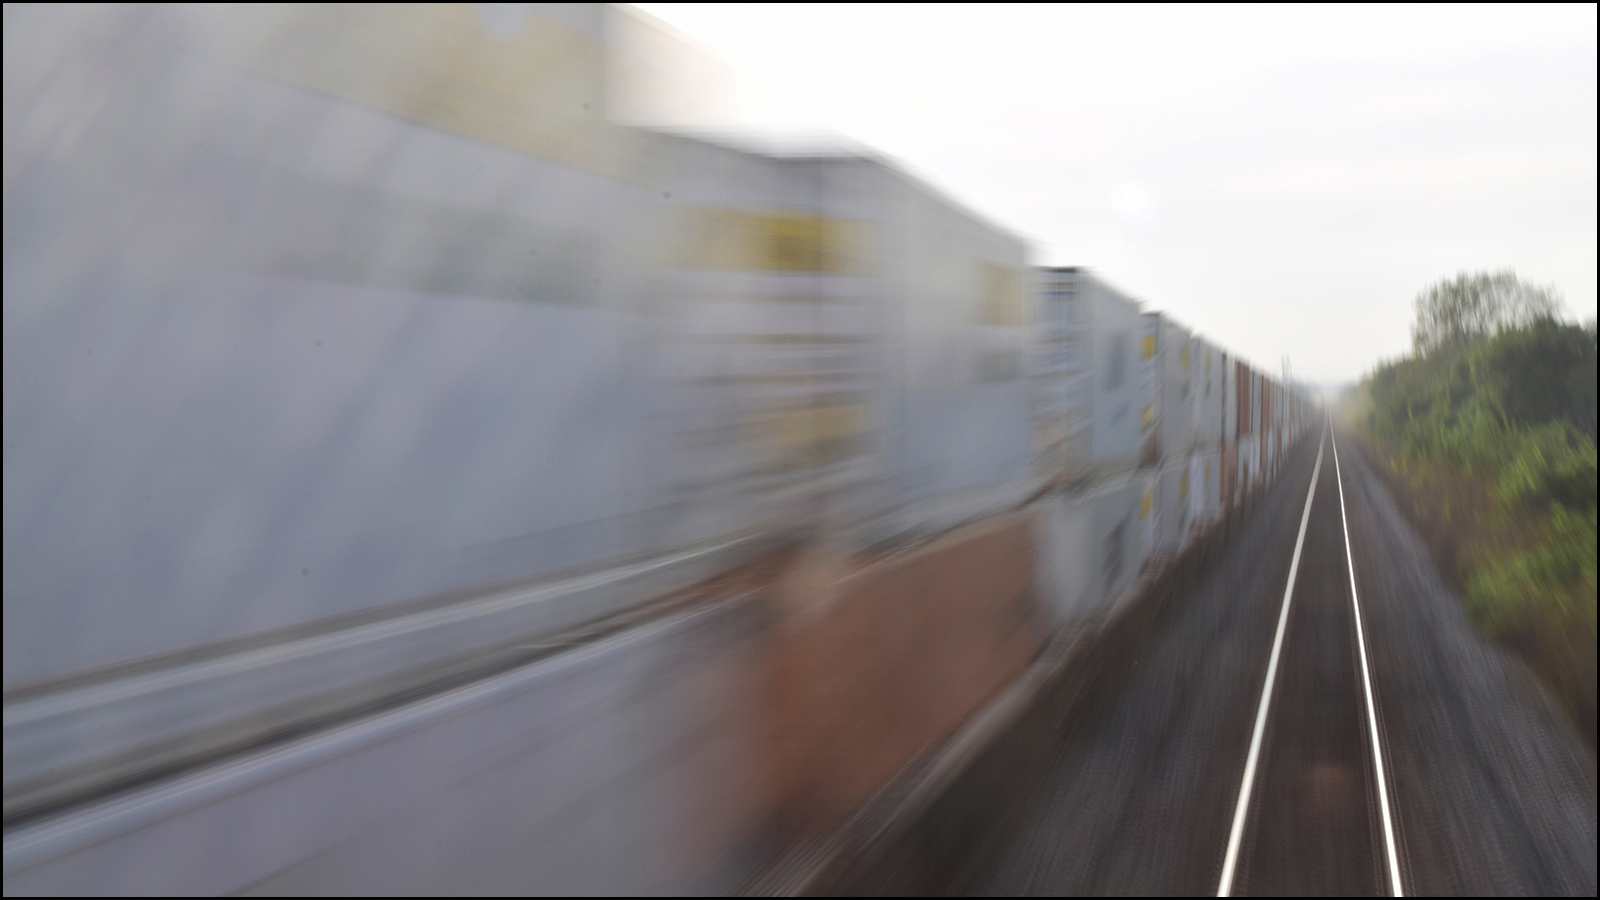 the blur of consumerism on its way to stores (c) mark somple 2019